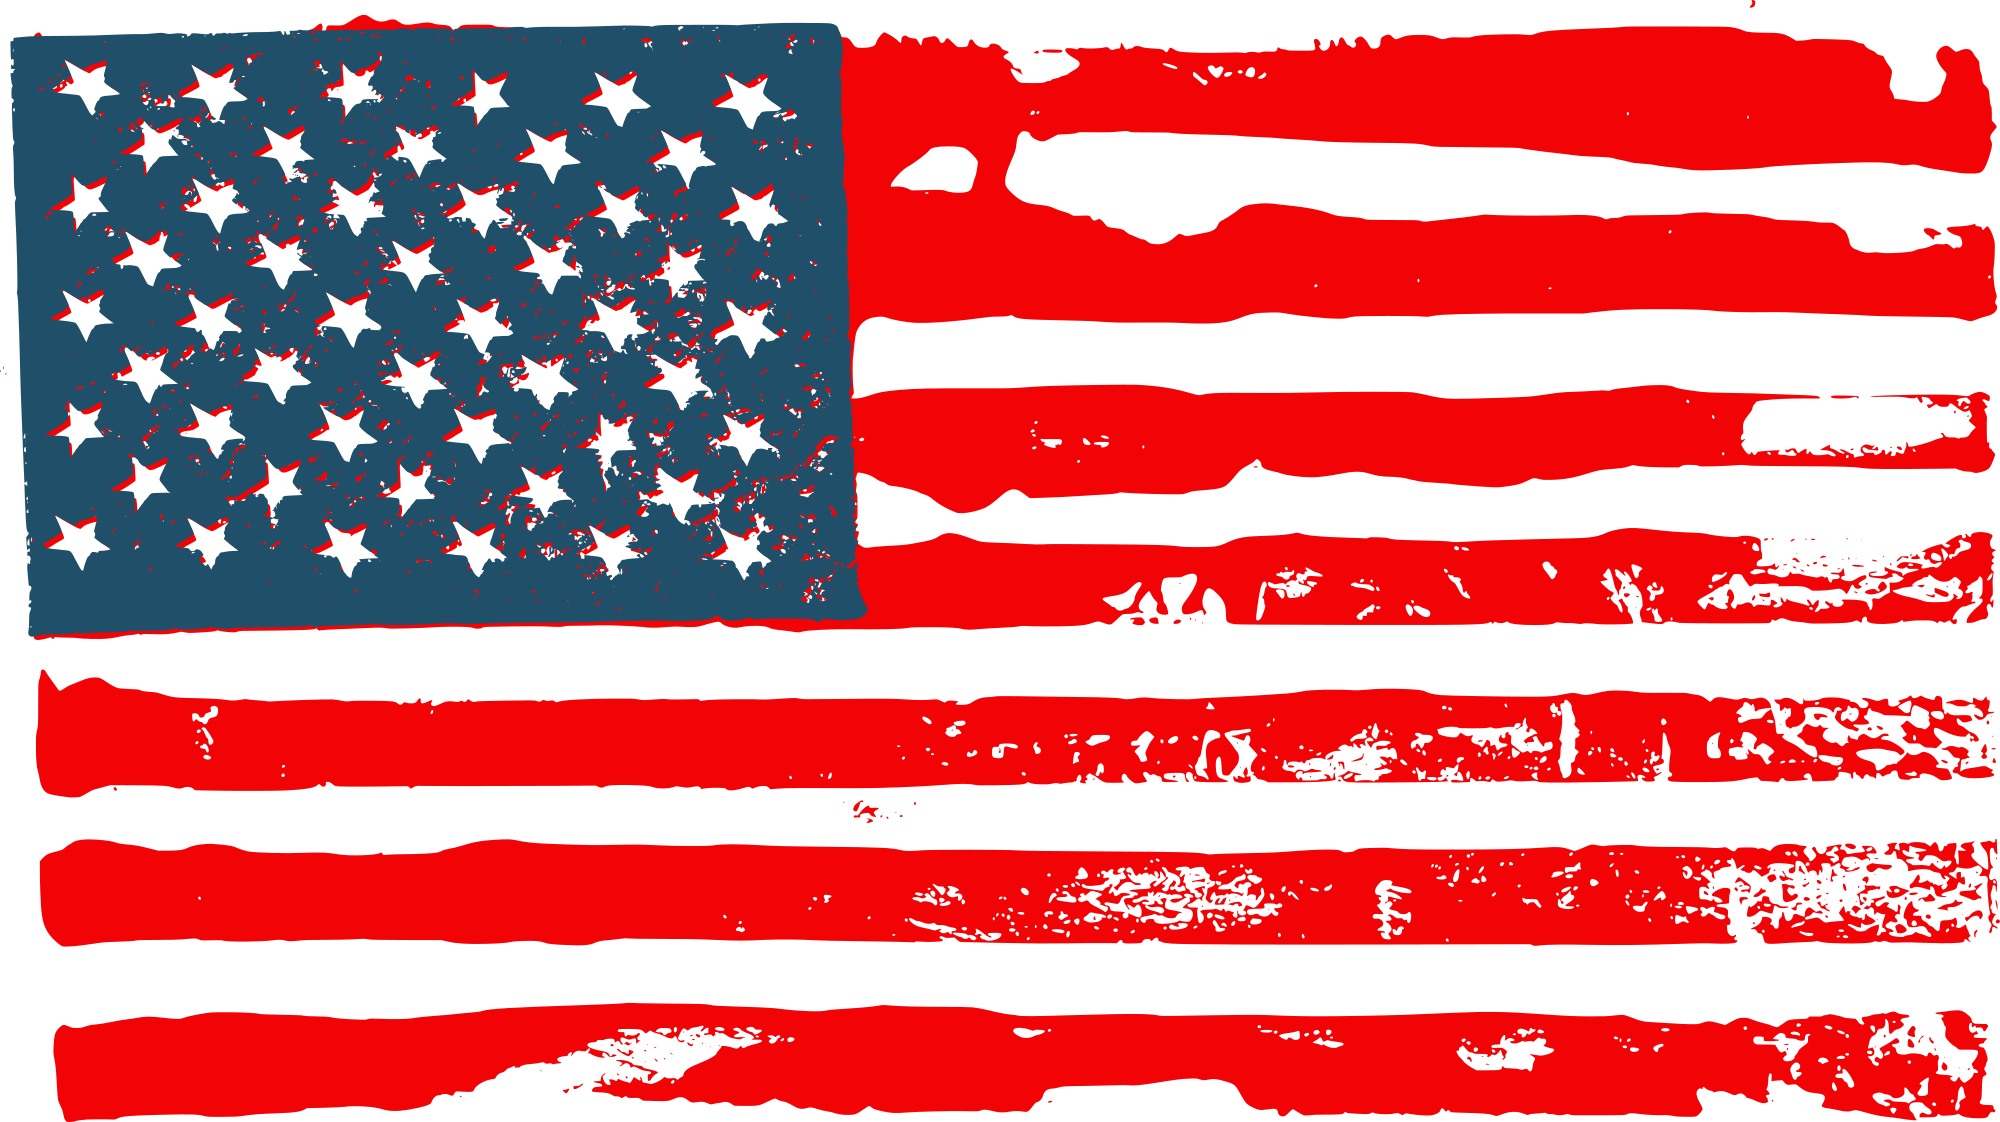 grunge-american-flag-4.png